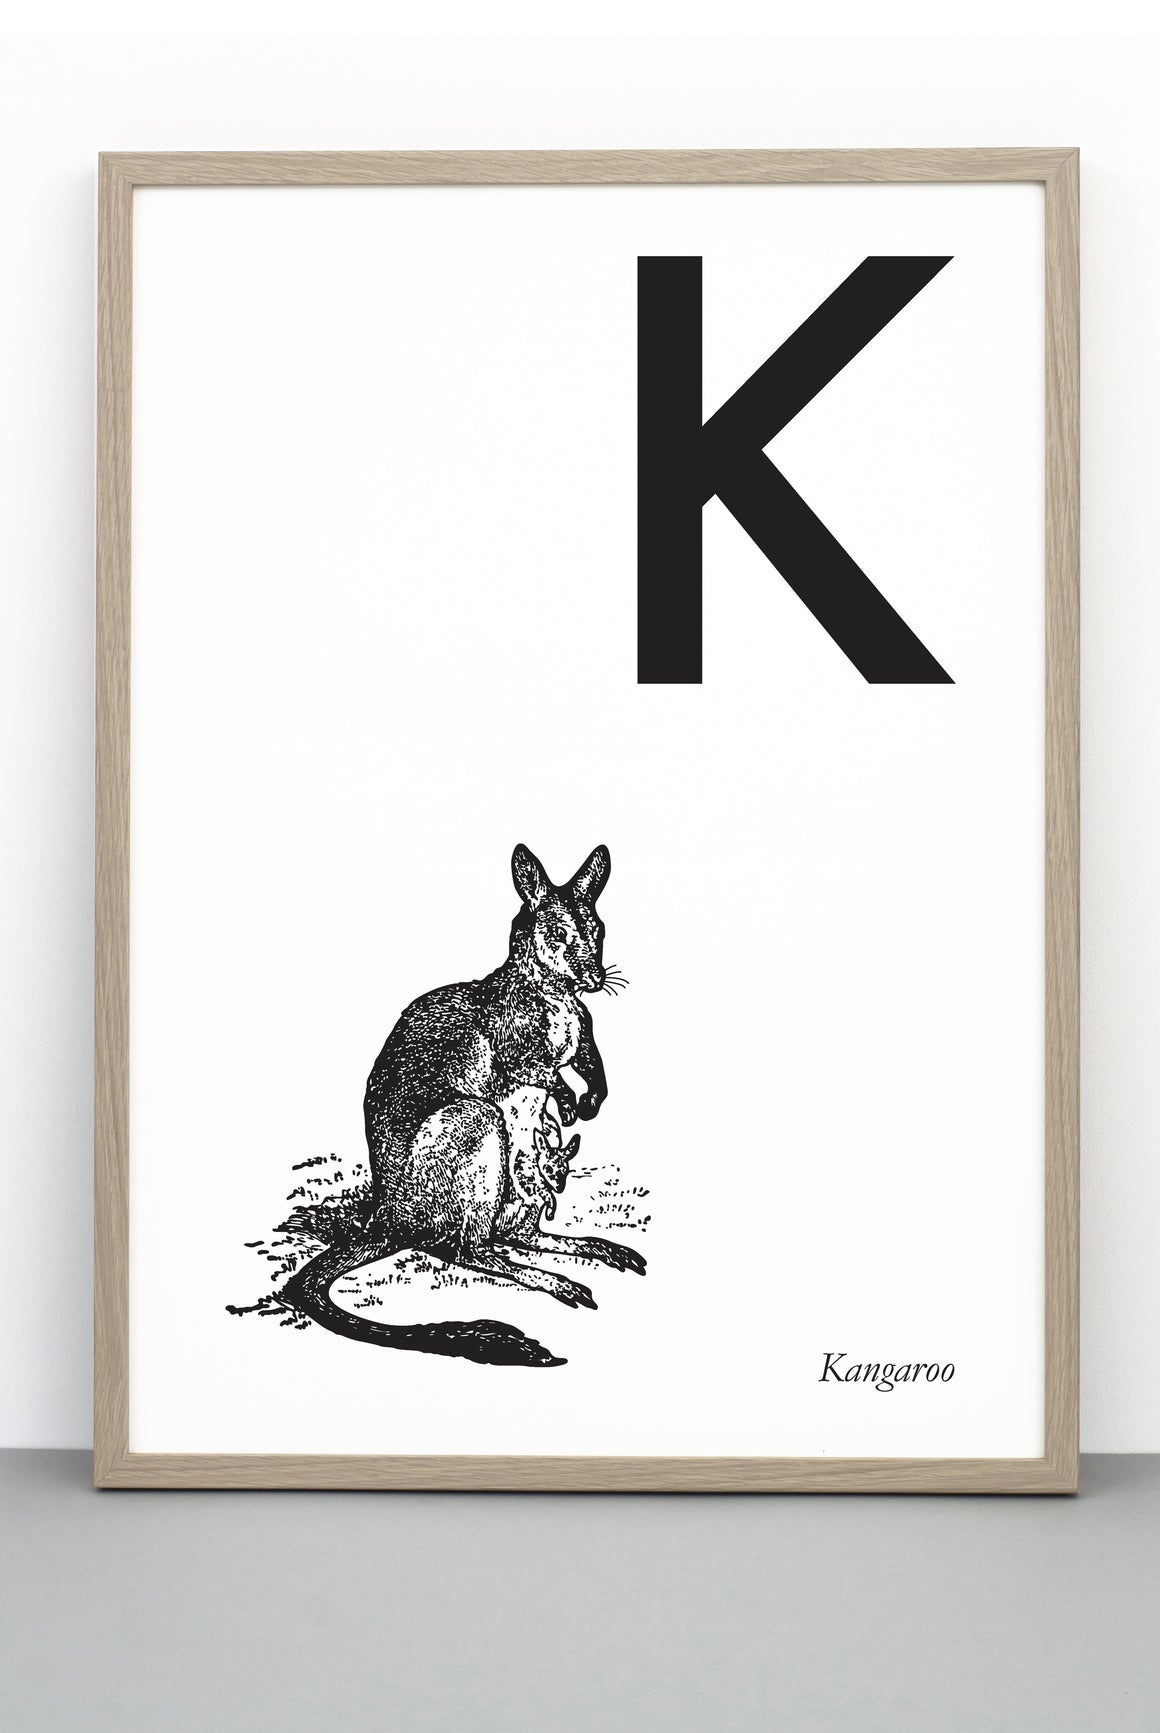 ANIMAL LETTER K, KANGAROO, K DOWNLOADABLE PRINT